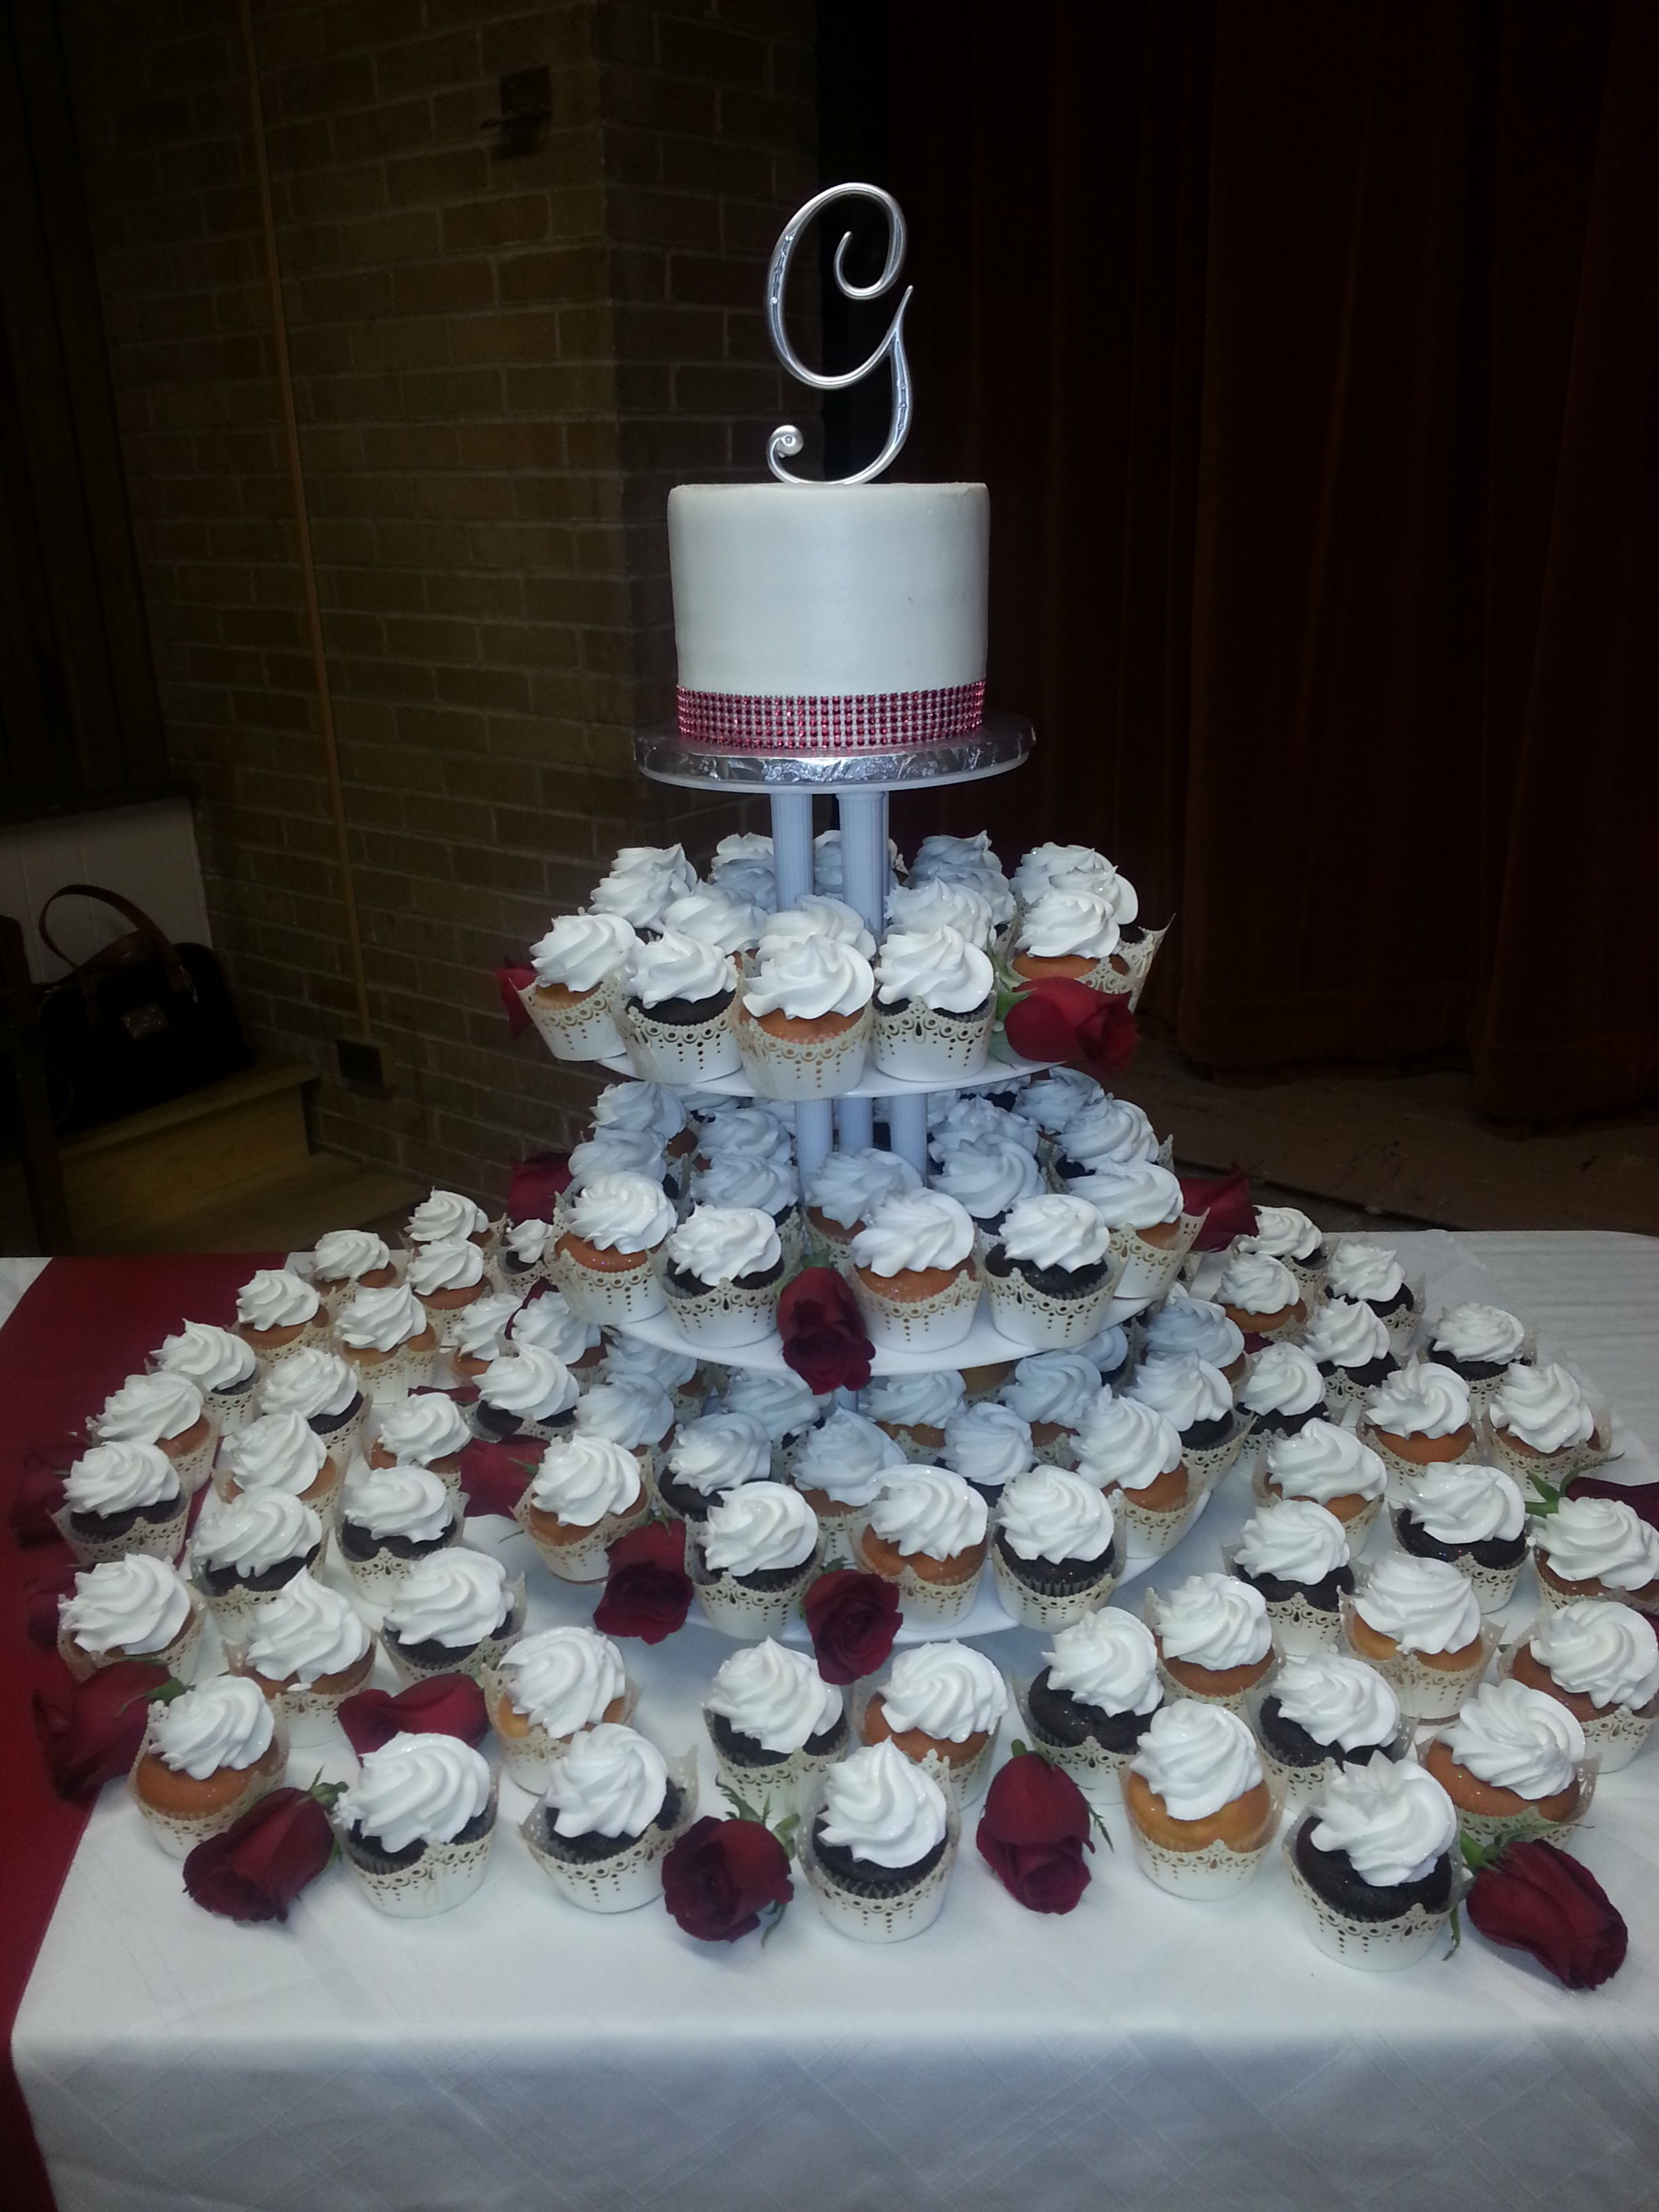 Calumet Bakery Wedding Cake And Cupcake Display